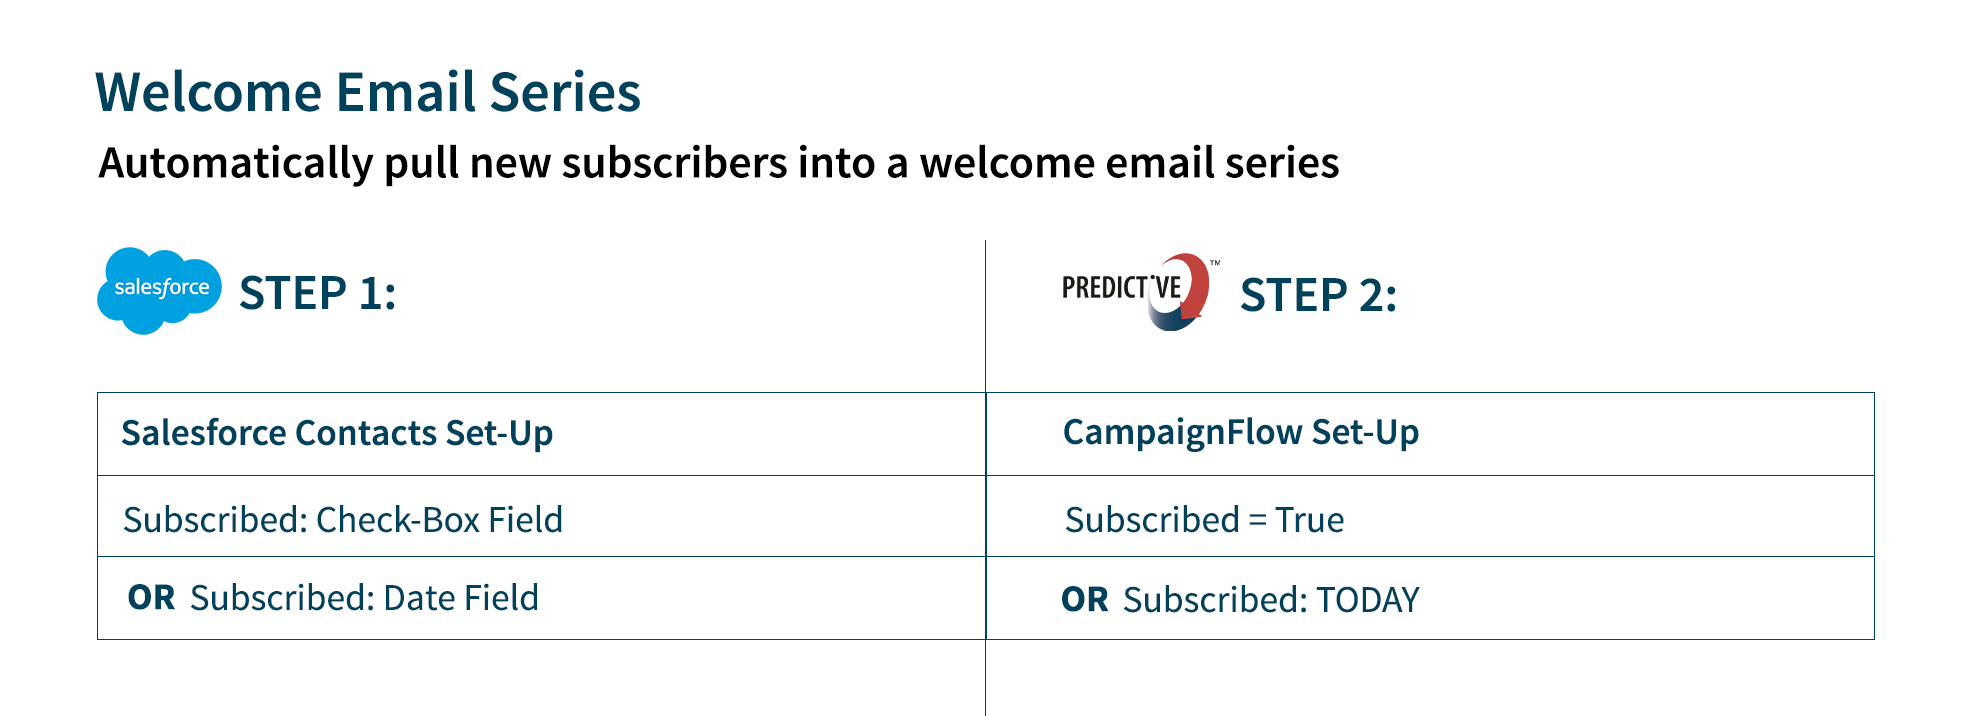 email segmentation based on new subscribers